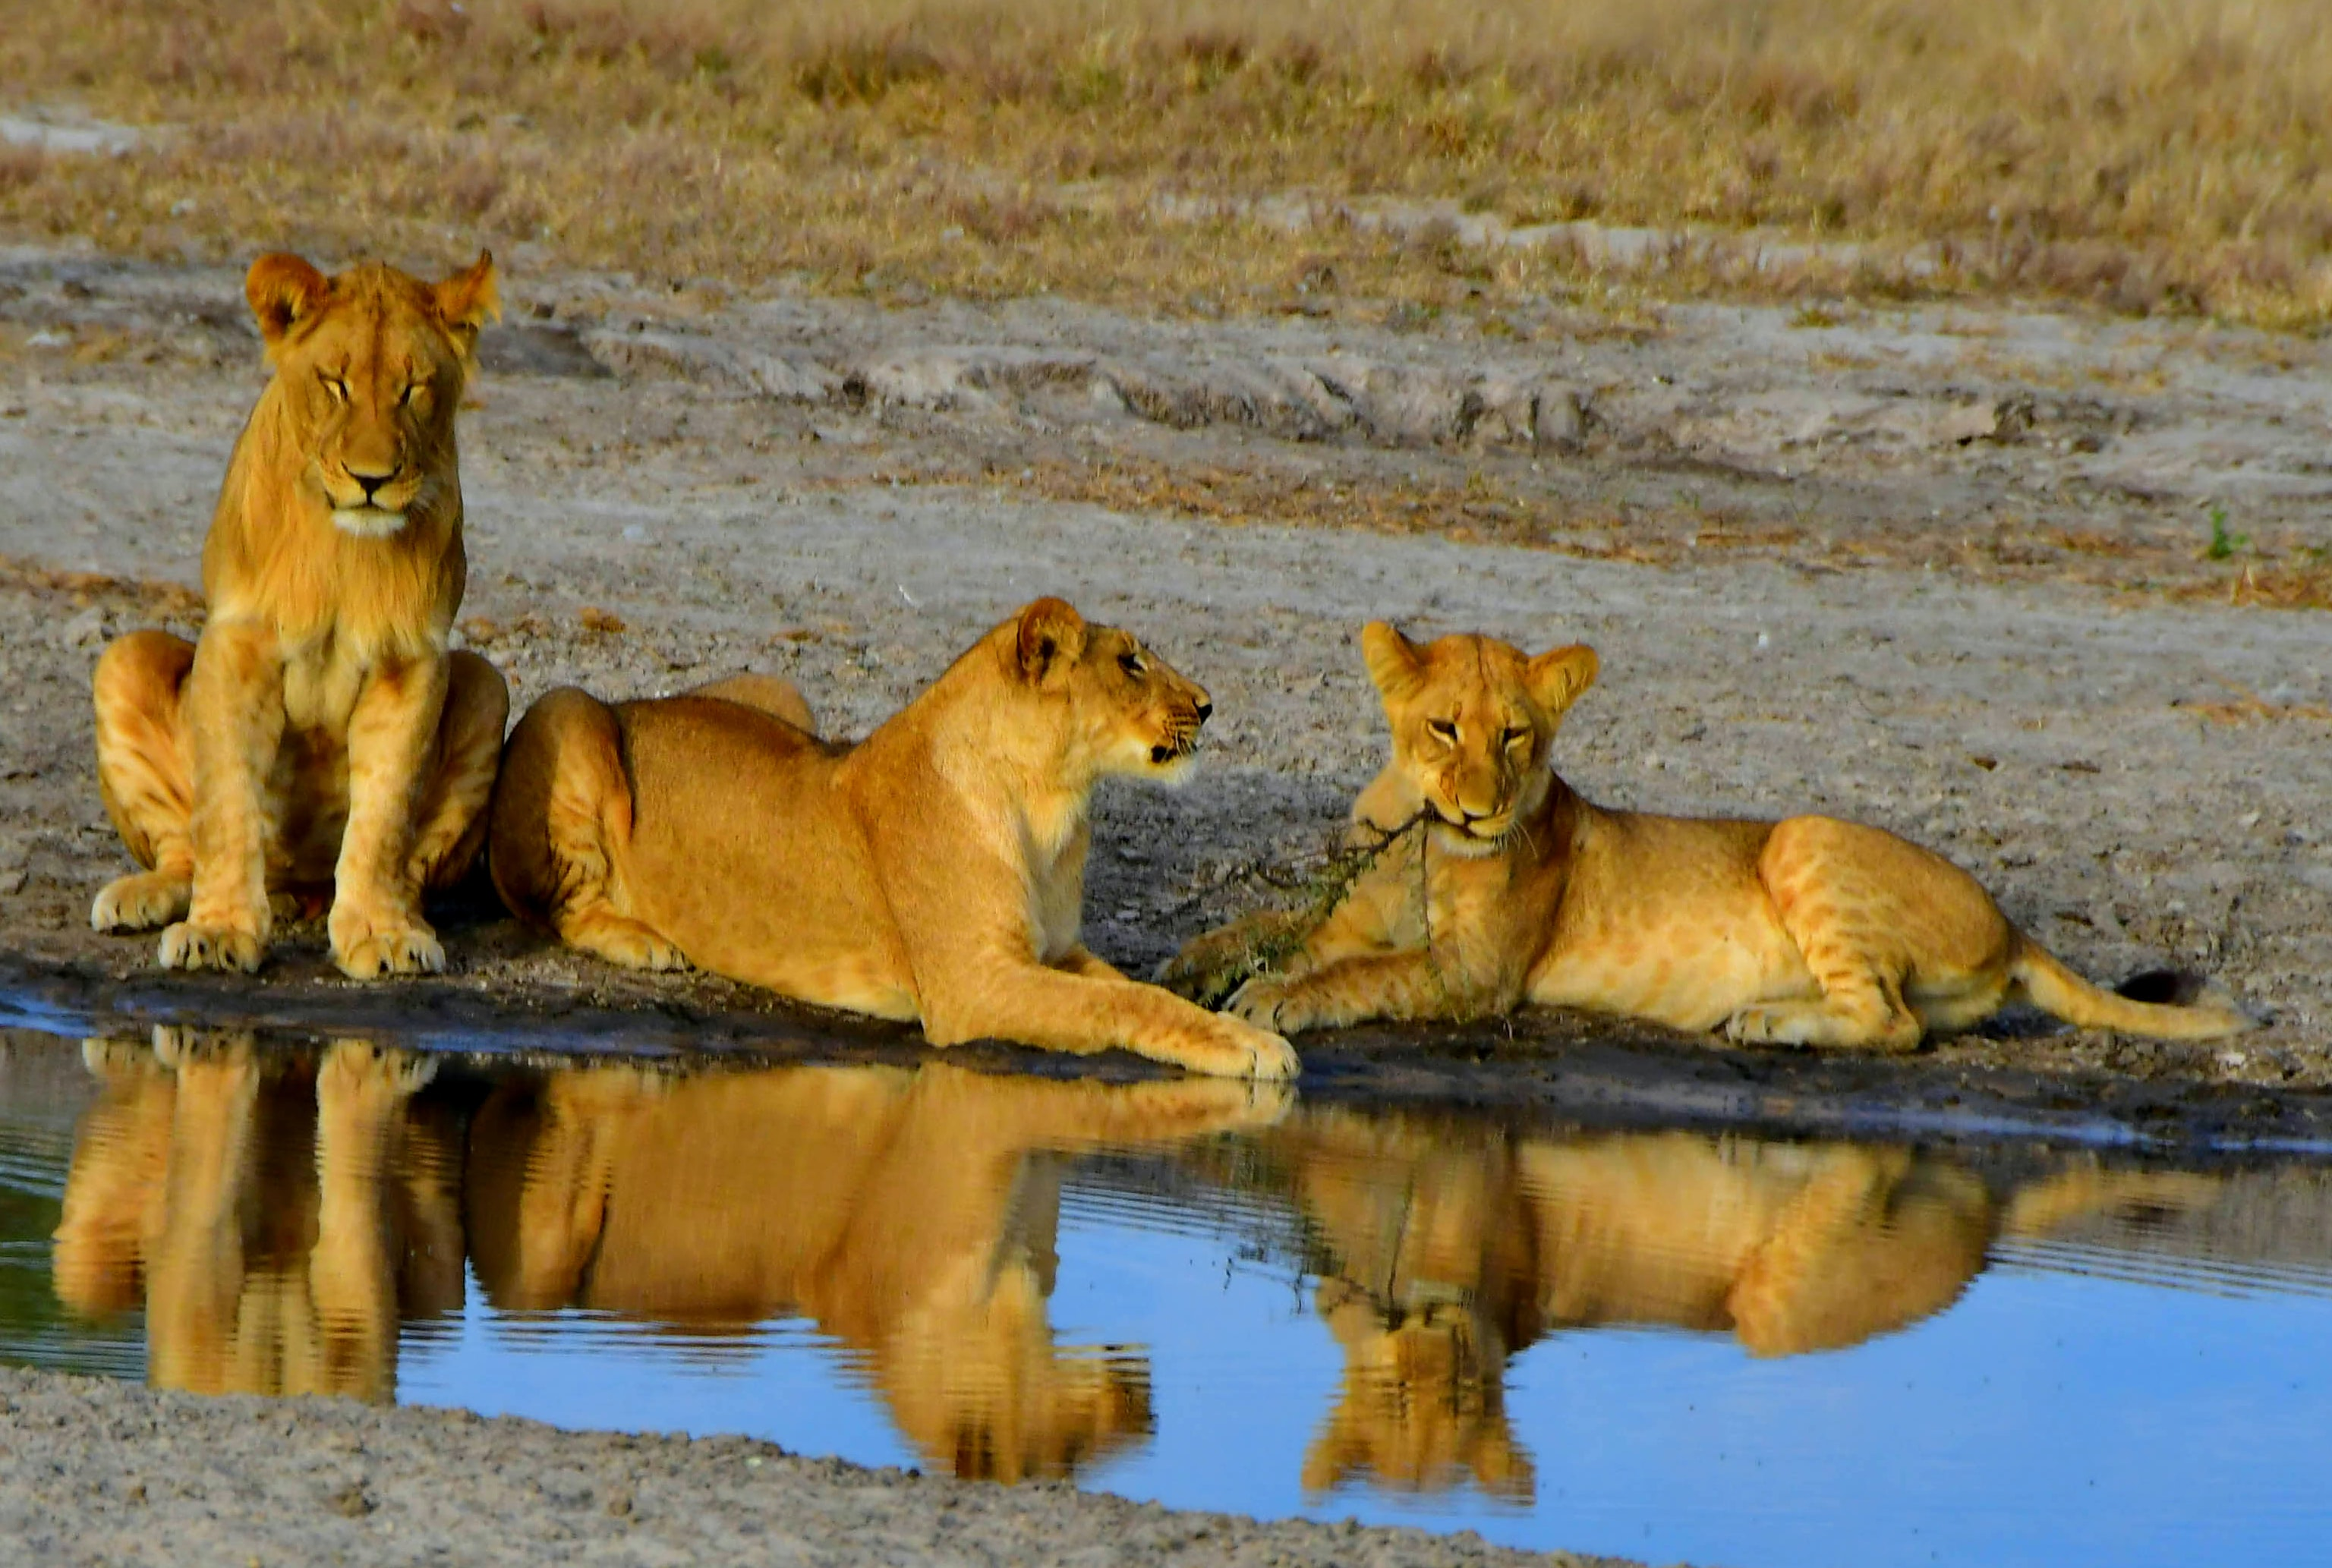 three lion beside body of water at daytime